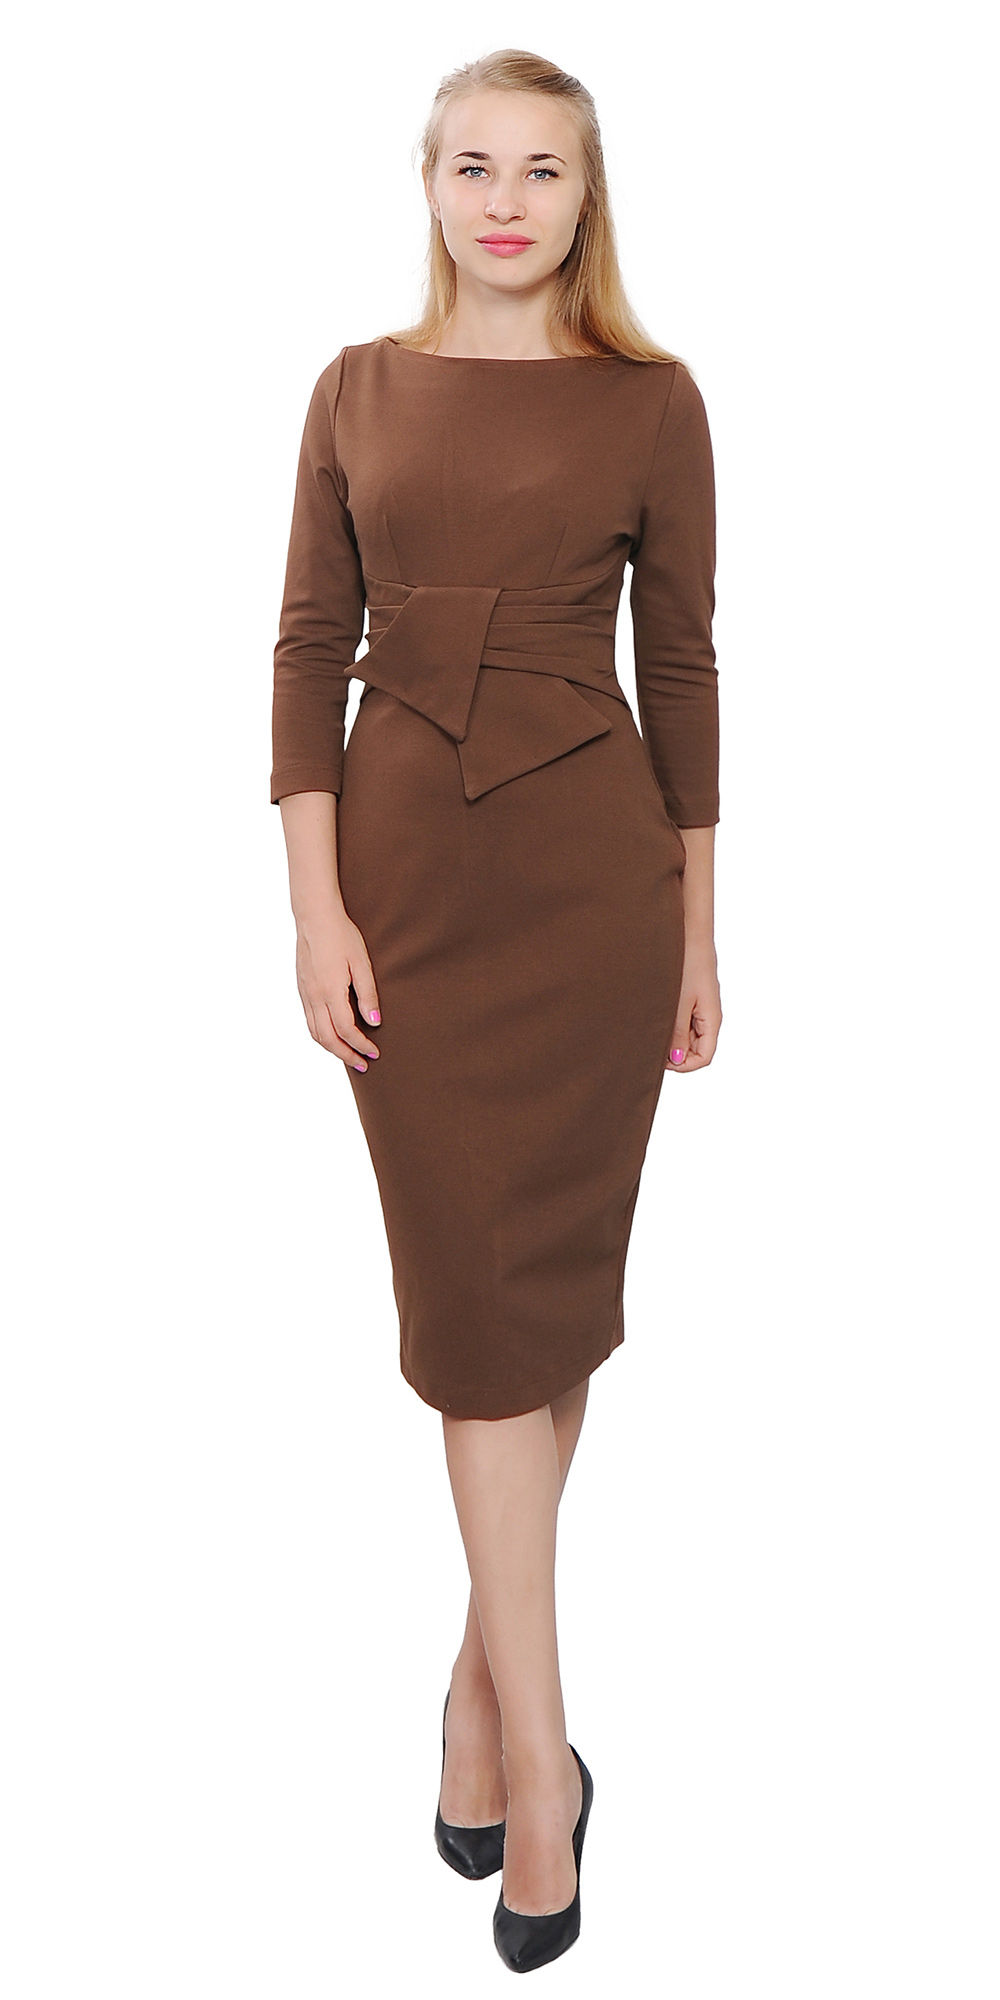 Wiggle Midi Dress Lady Vintage Retro 1950s Evening